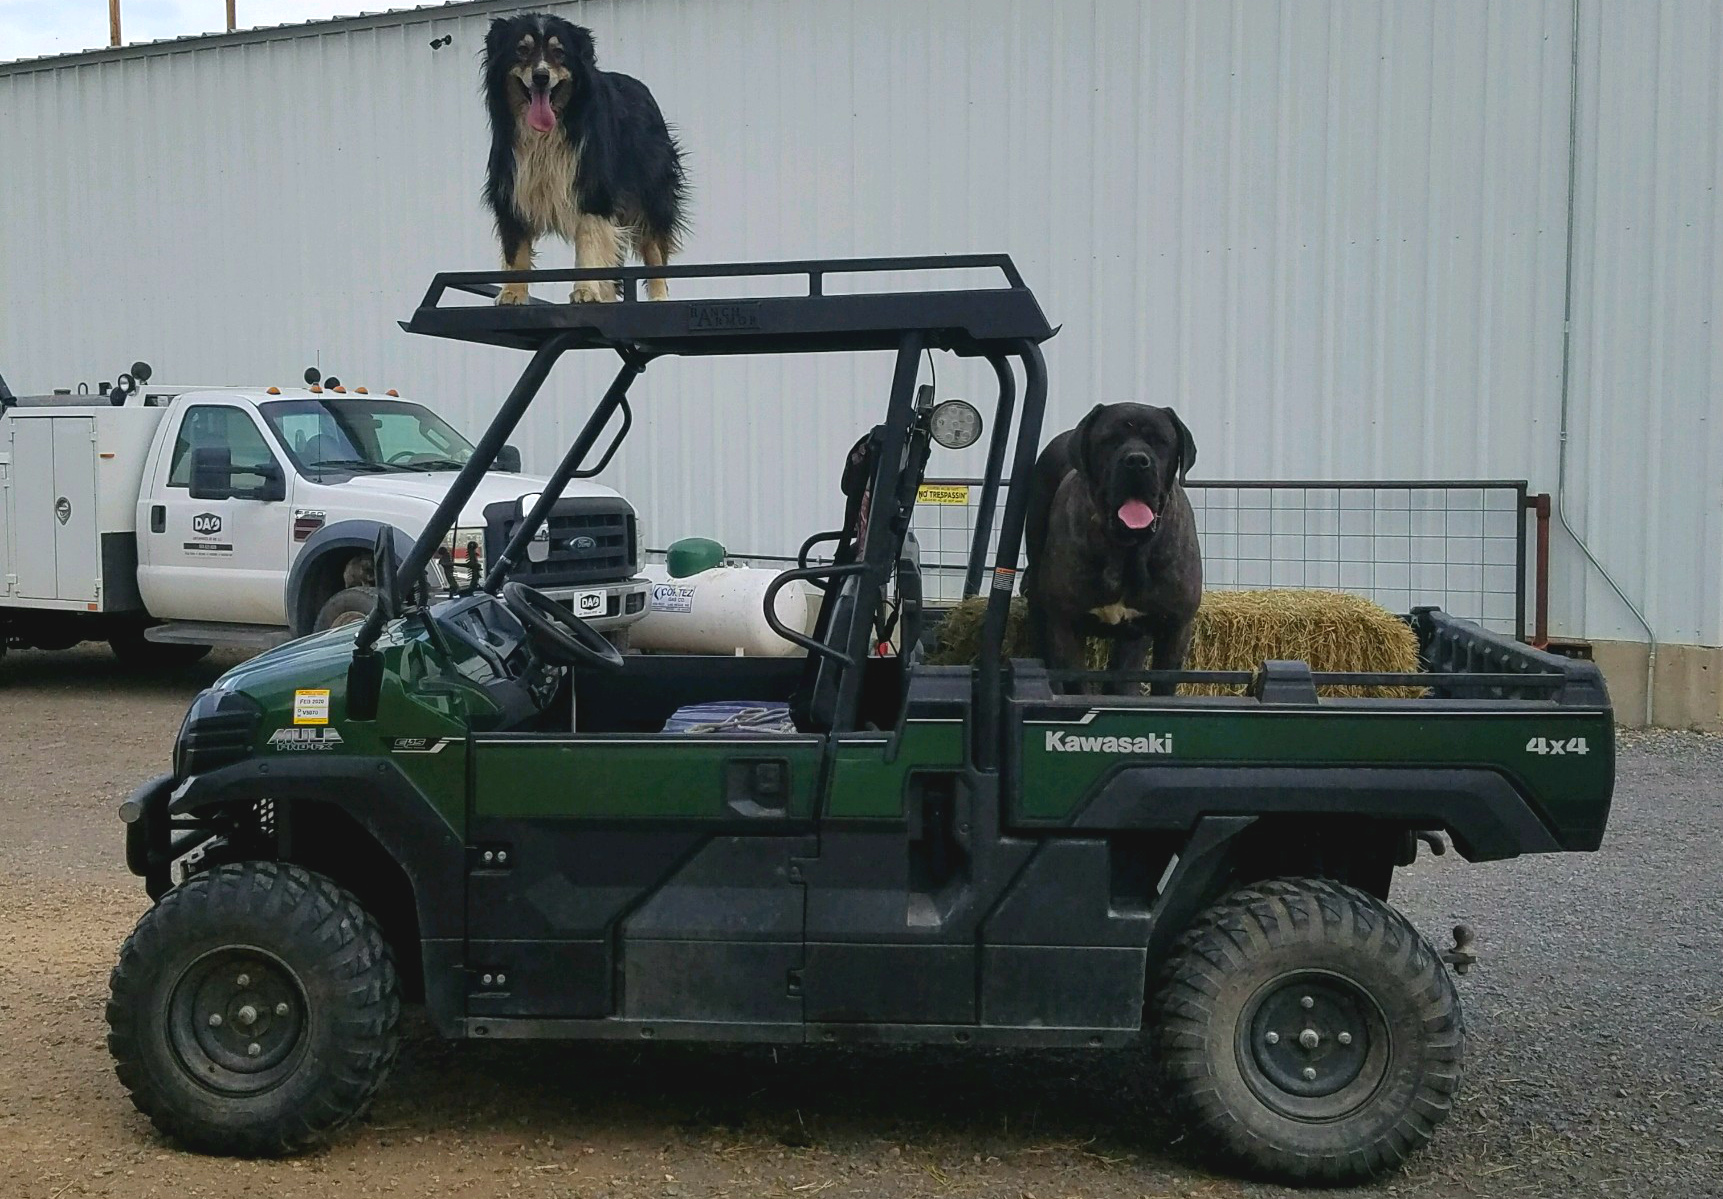 kawasaki-mule-pro-fx-metal-roof-with-dogs-on-it.jpg